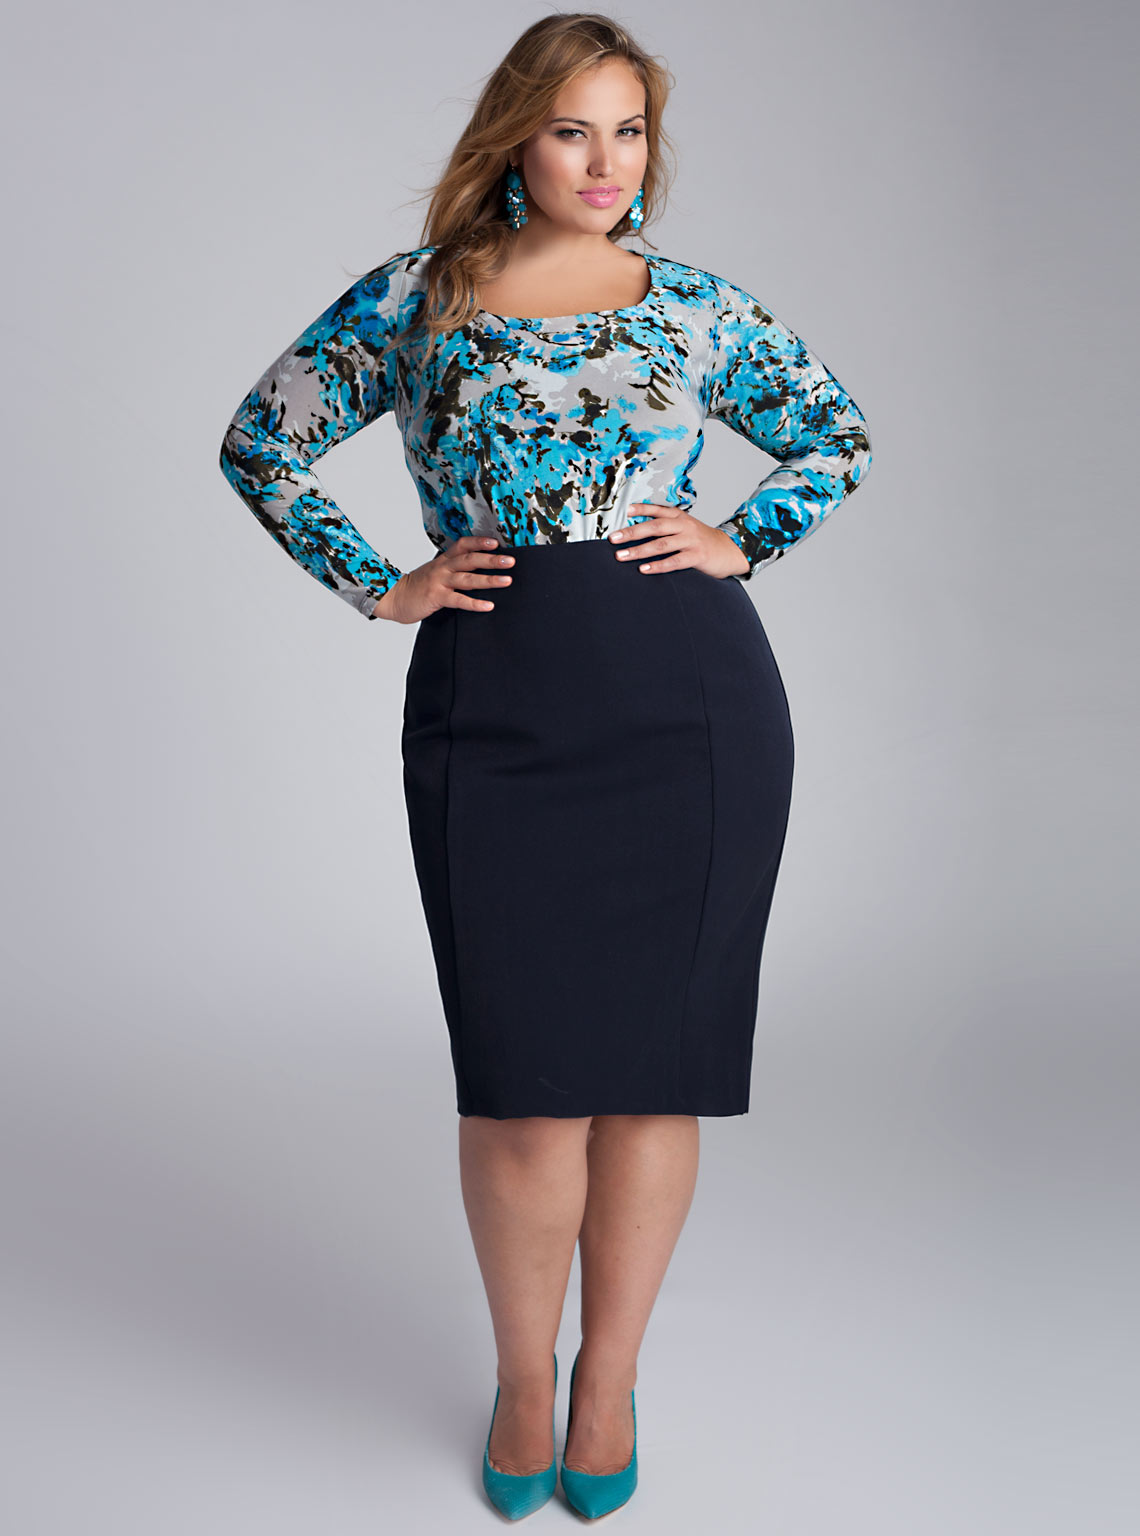 Plus Size Formal Dresses Under 100: DressedUpGirl.com